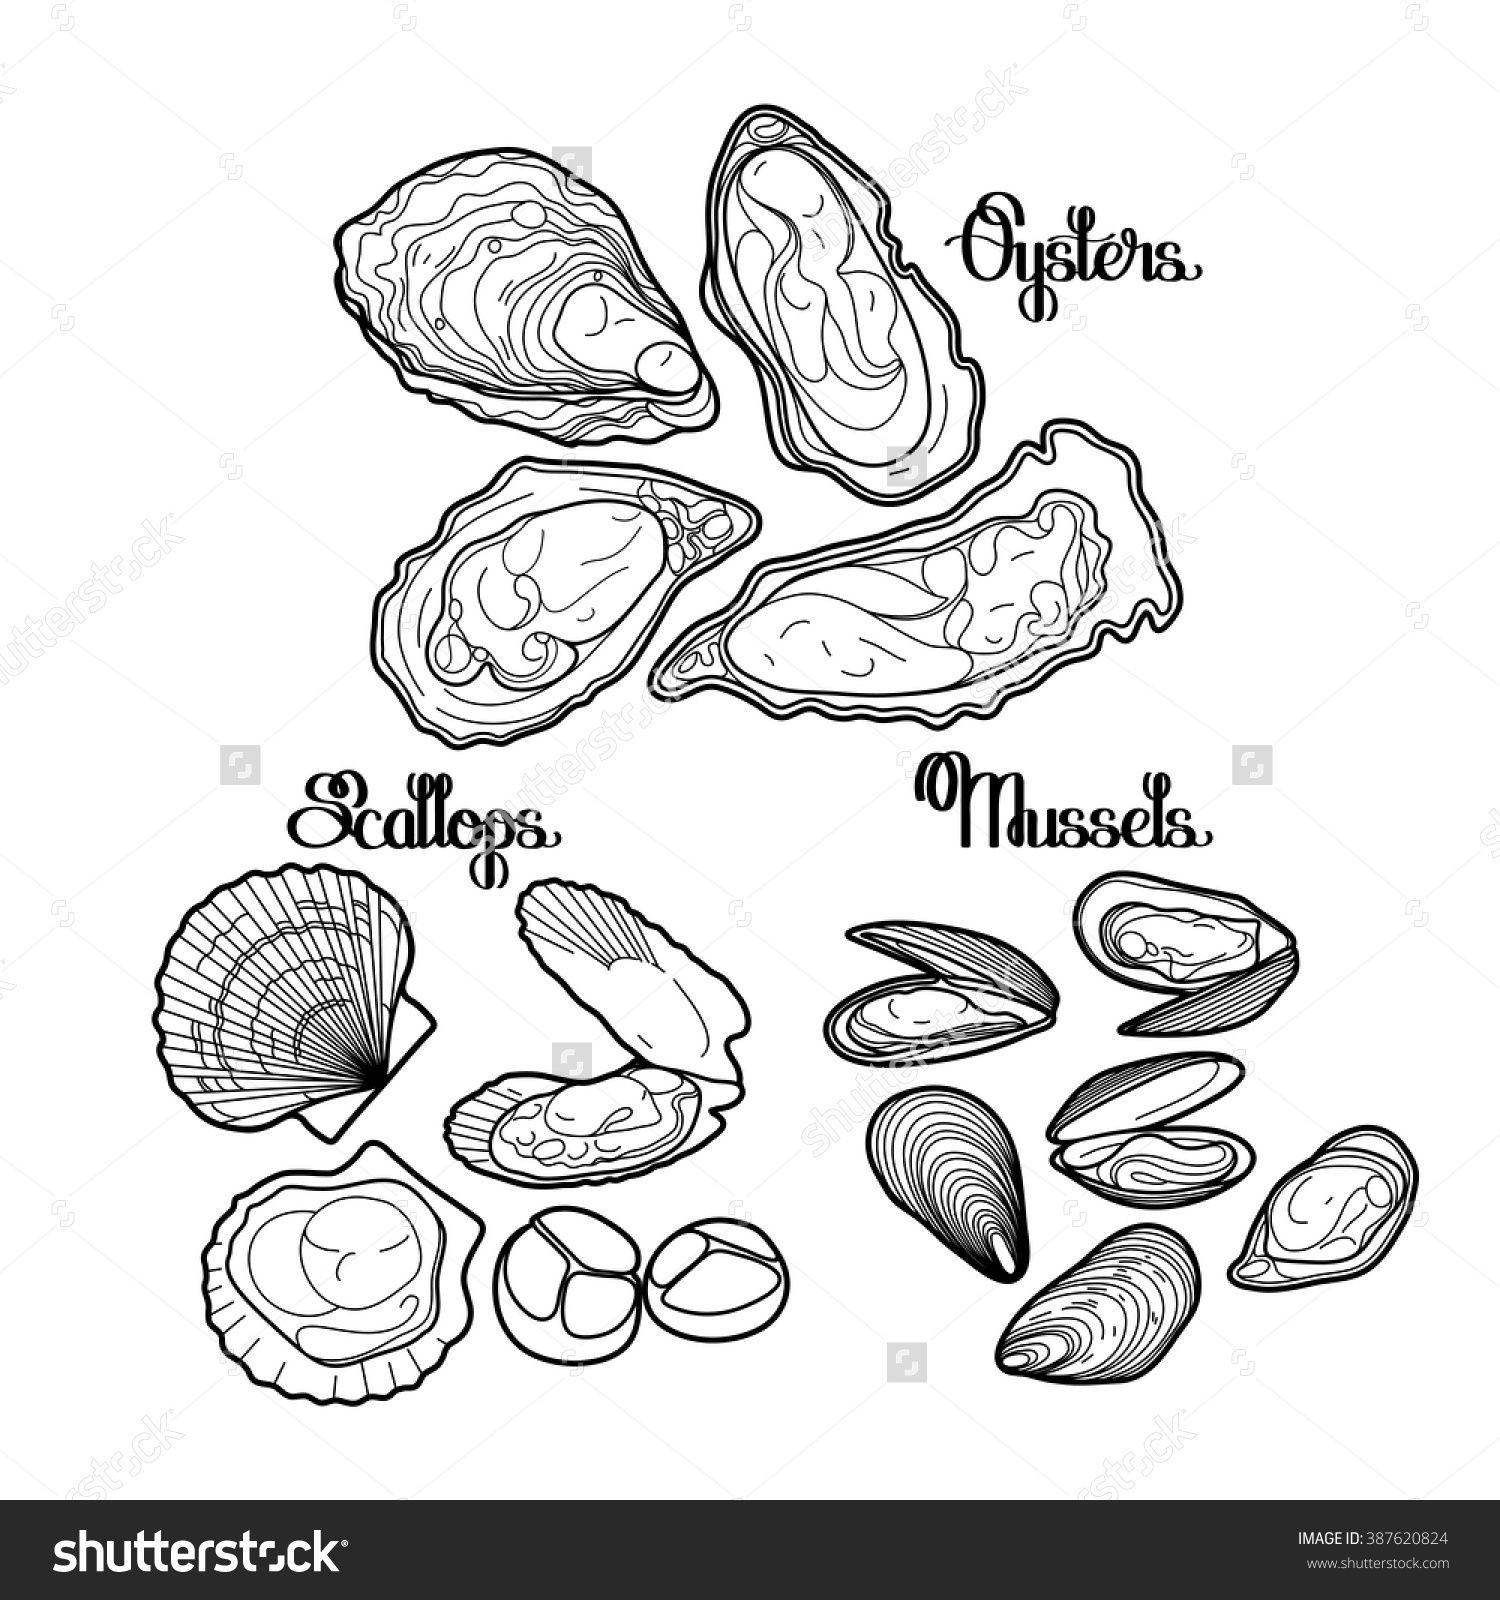 Oysters Image By Heather Sansky Mussels Oysters Drawings